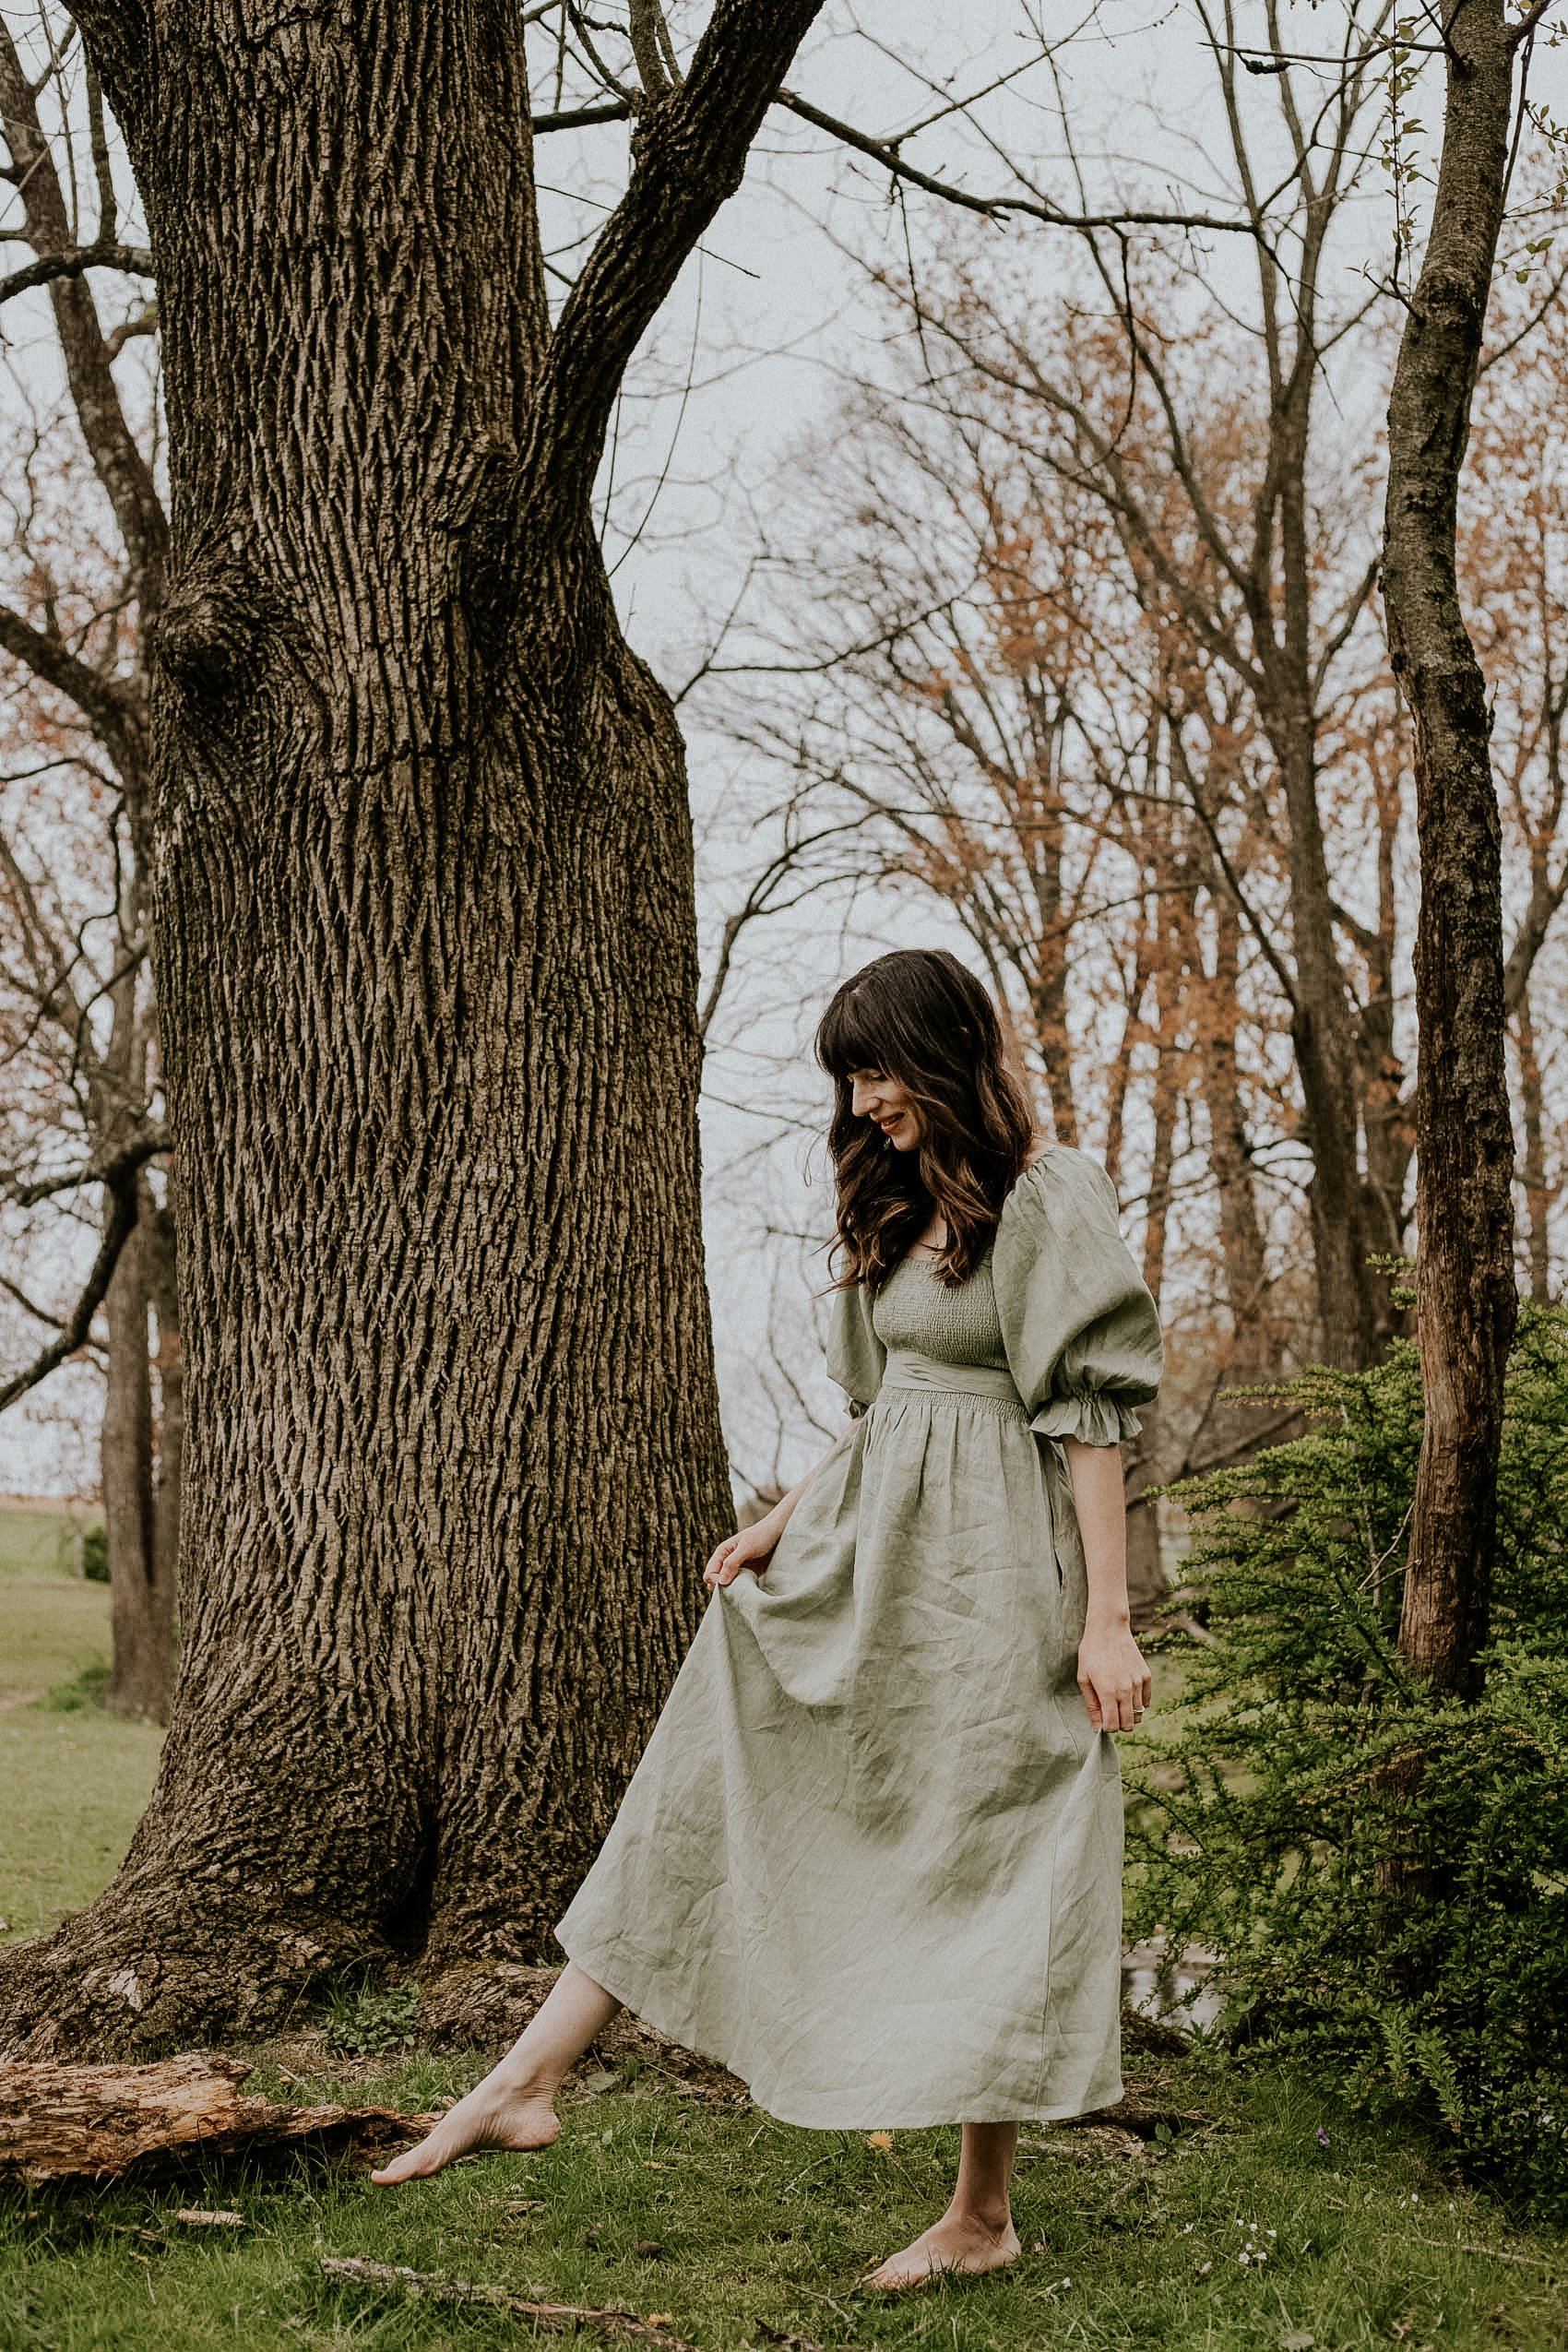 Reversible Linen Dress from Aulieude on woman barefoot in the woods